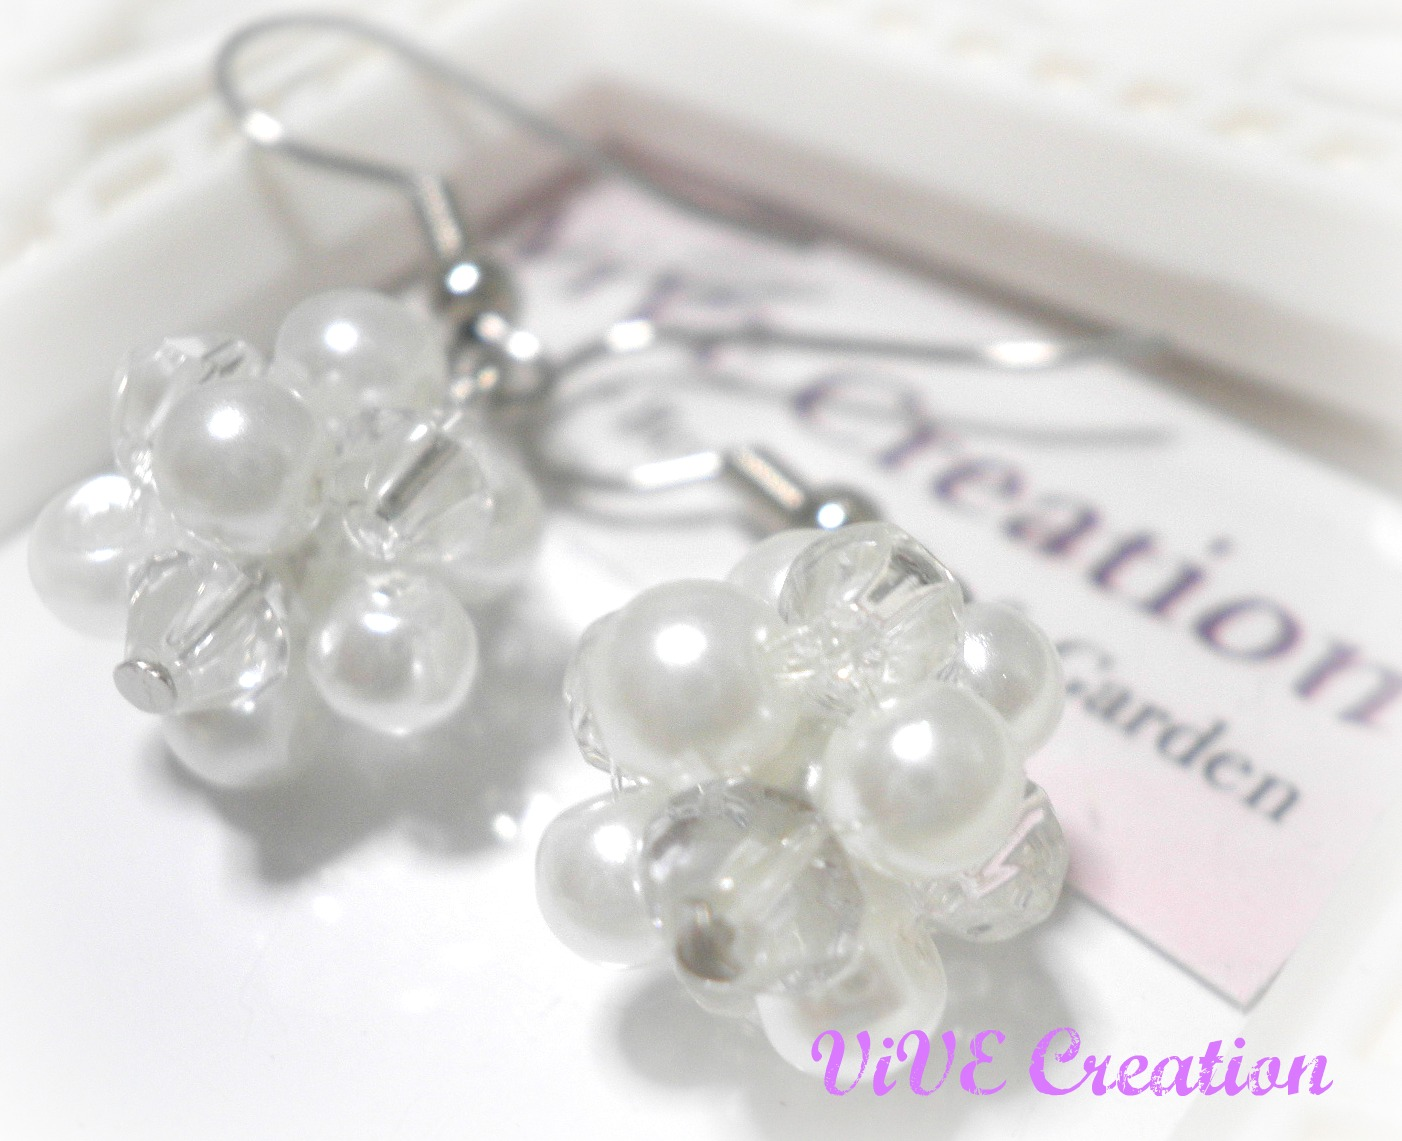 Small Ball earring